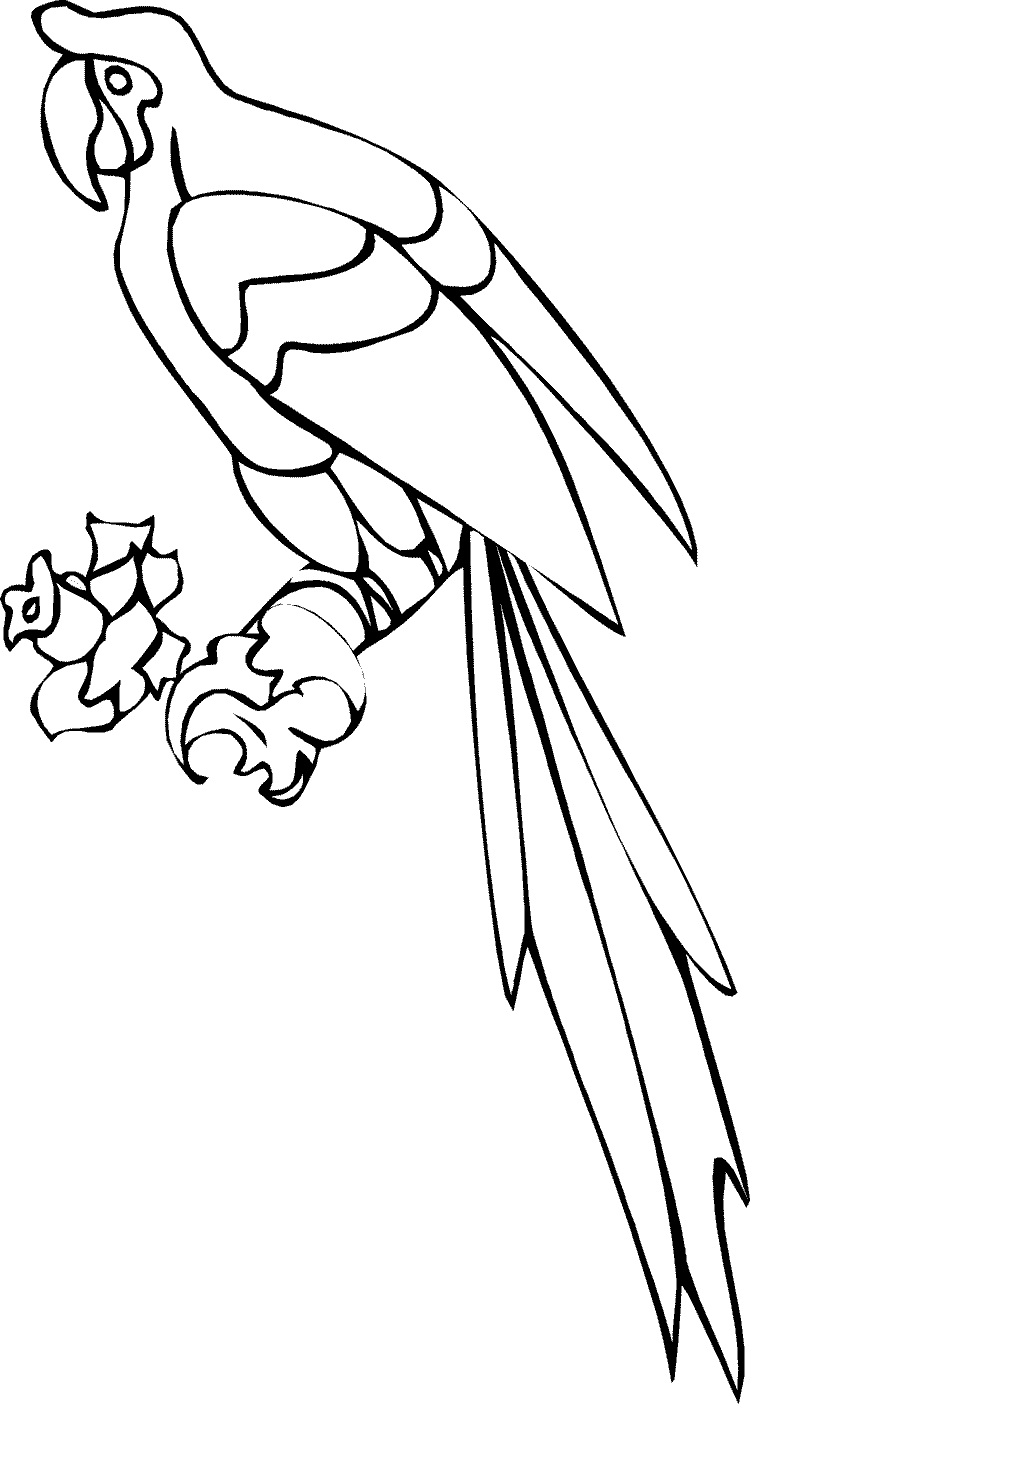 Free Printable Parrot Coloring Pages For Kids Animal Place